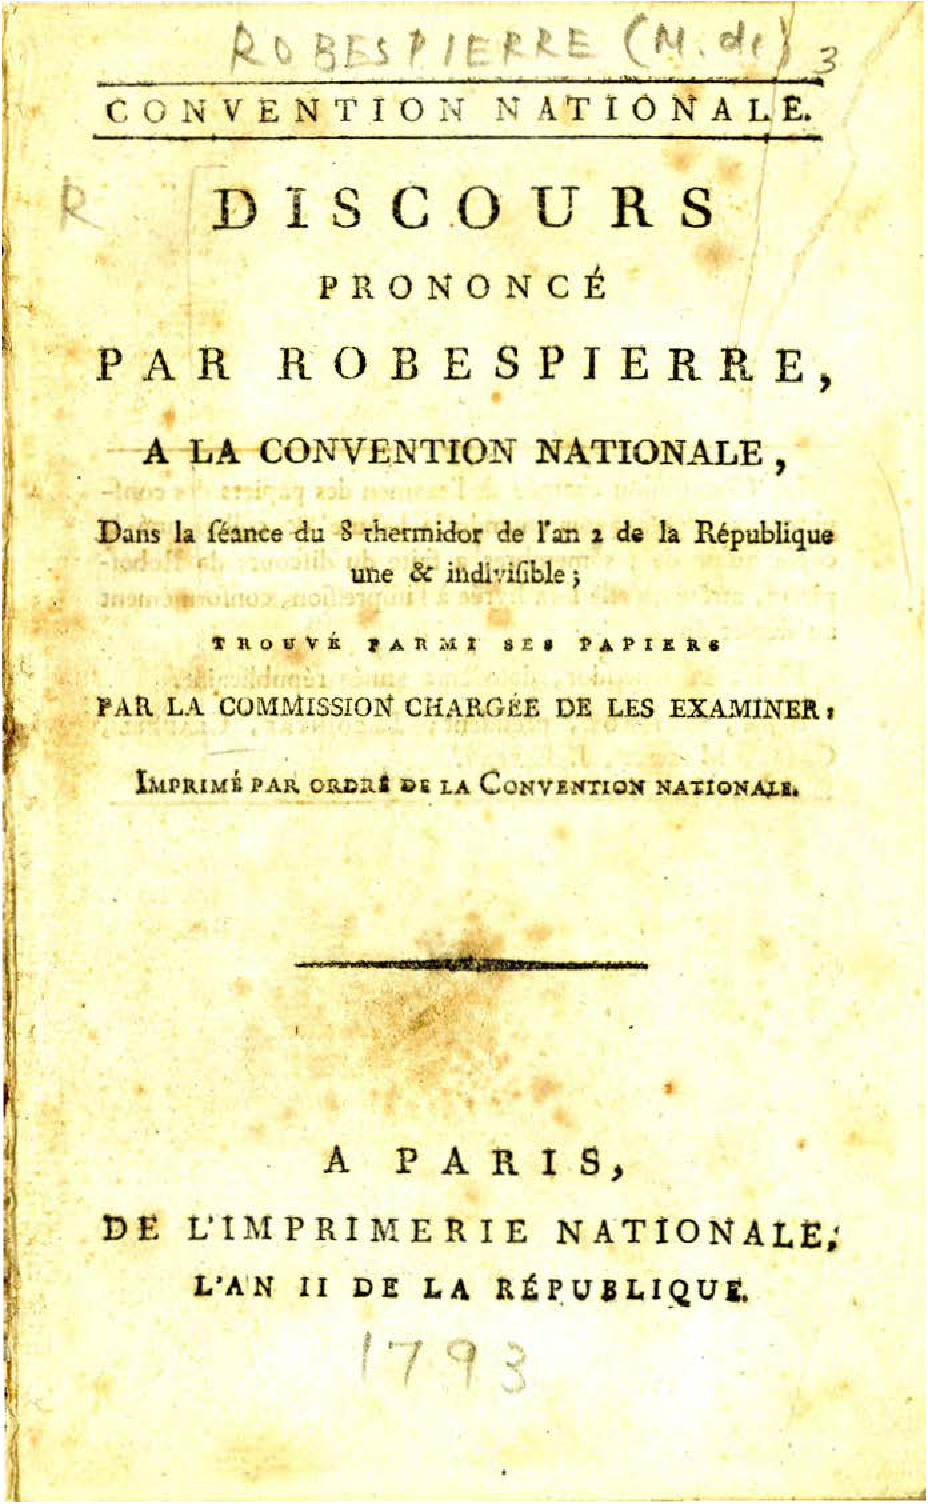 b685c7f376 Discours prononcé par Robespierre à la Convention nationale … [Speech made  by Robespierre to the national Convention, in the meeting of Thermidor 8,  ...